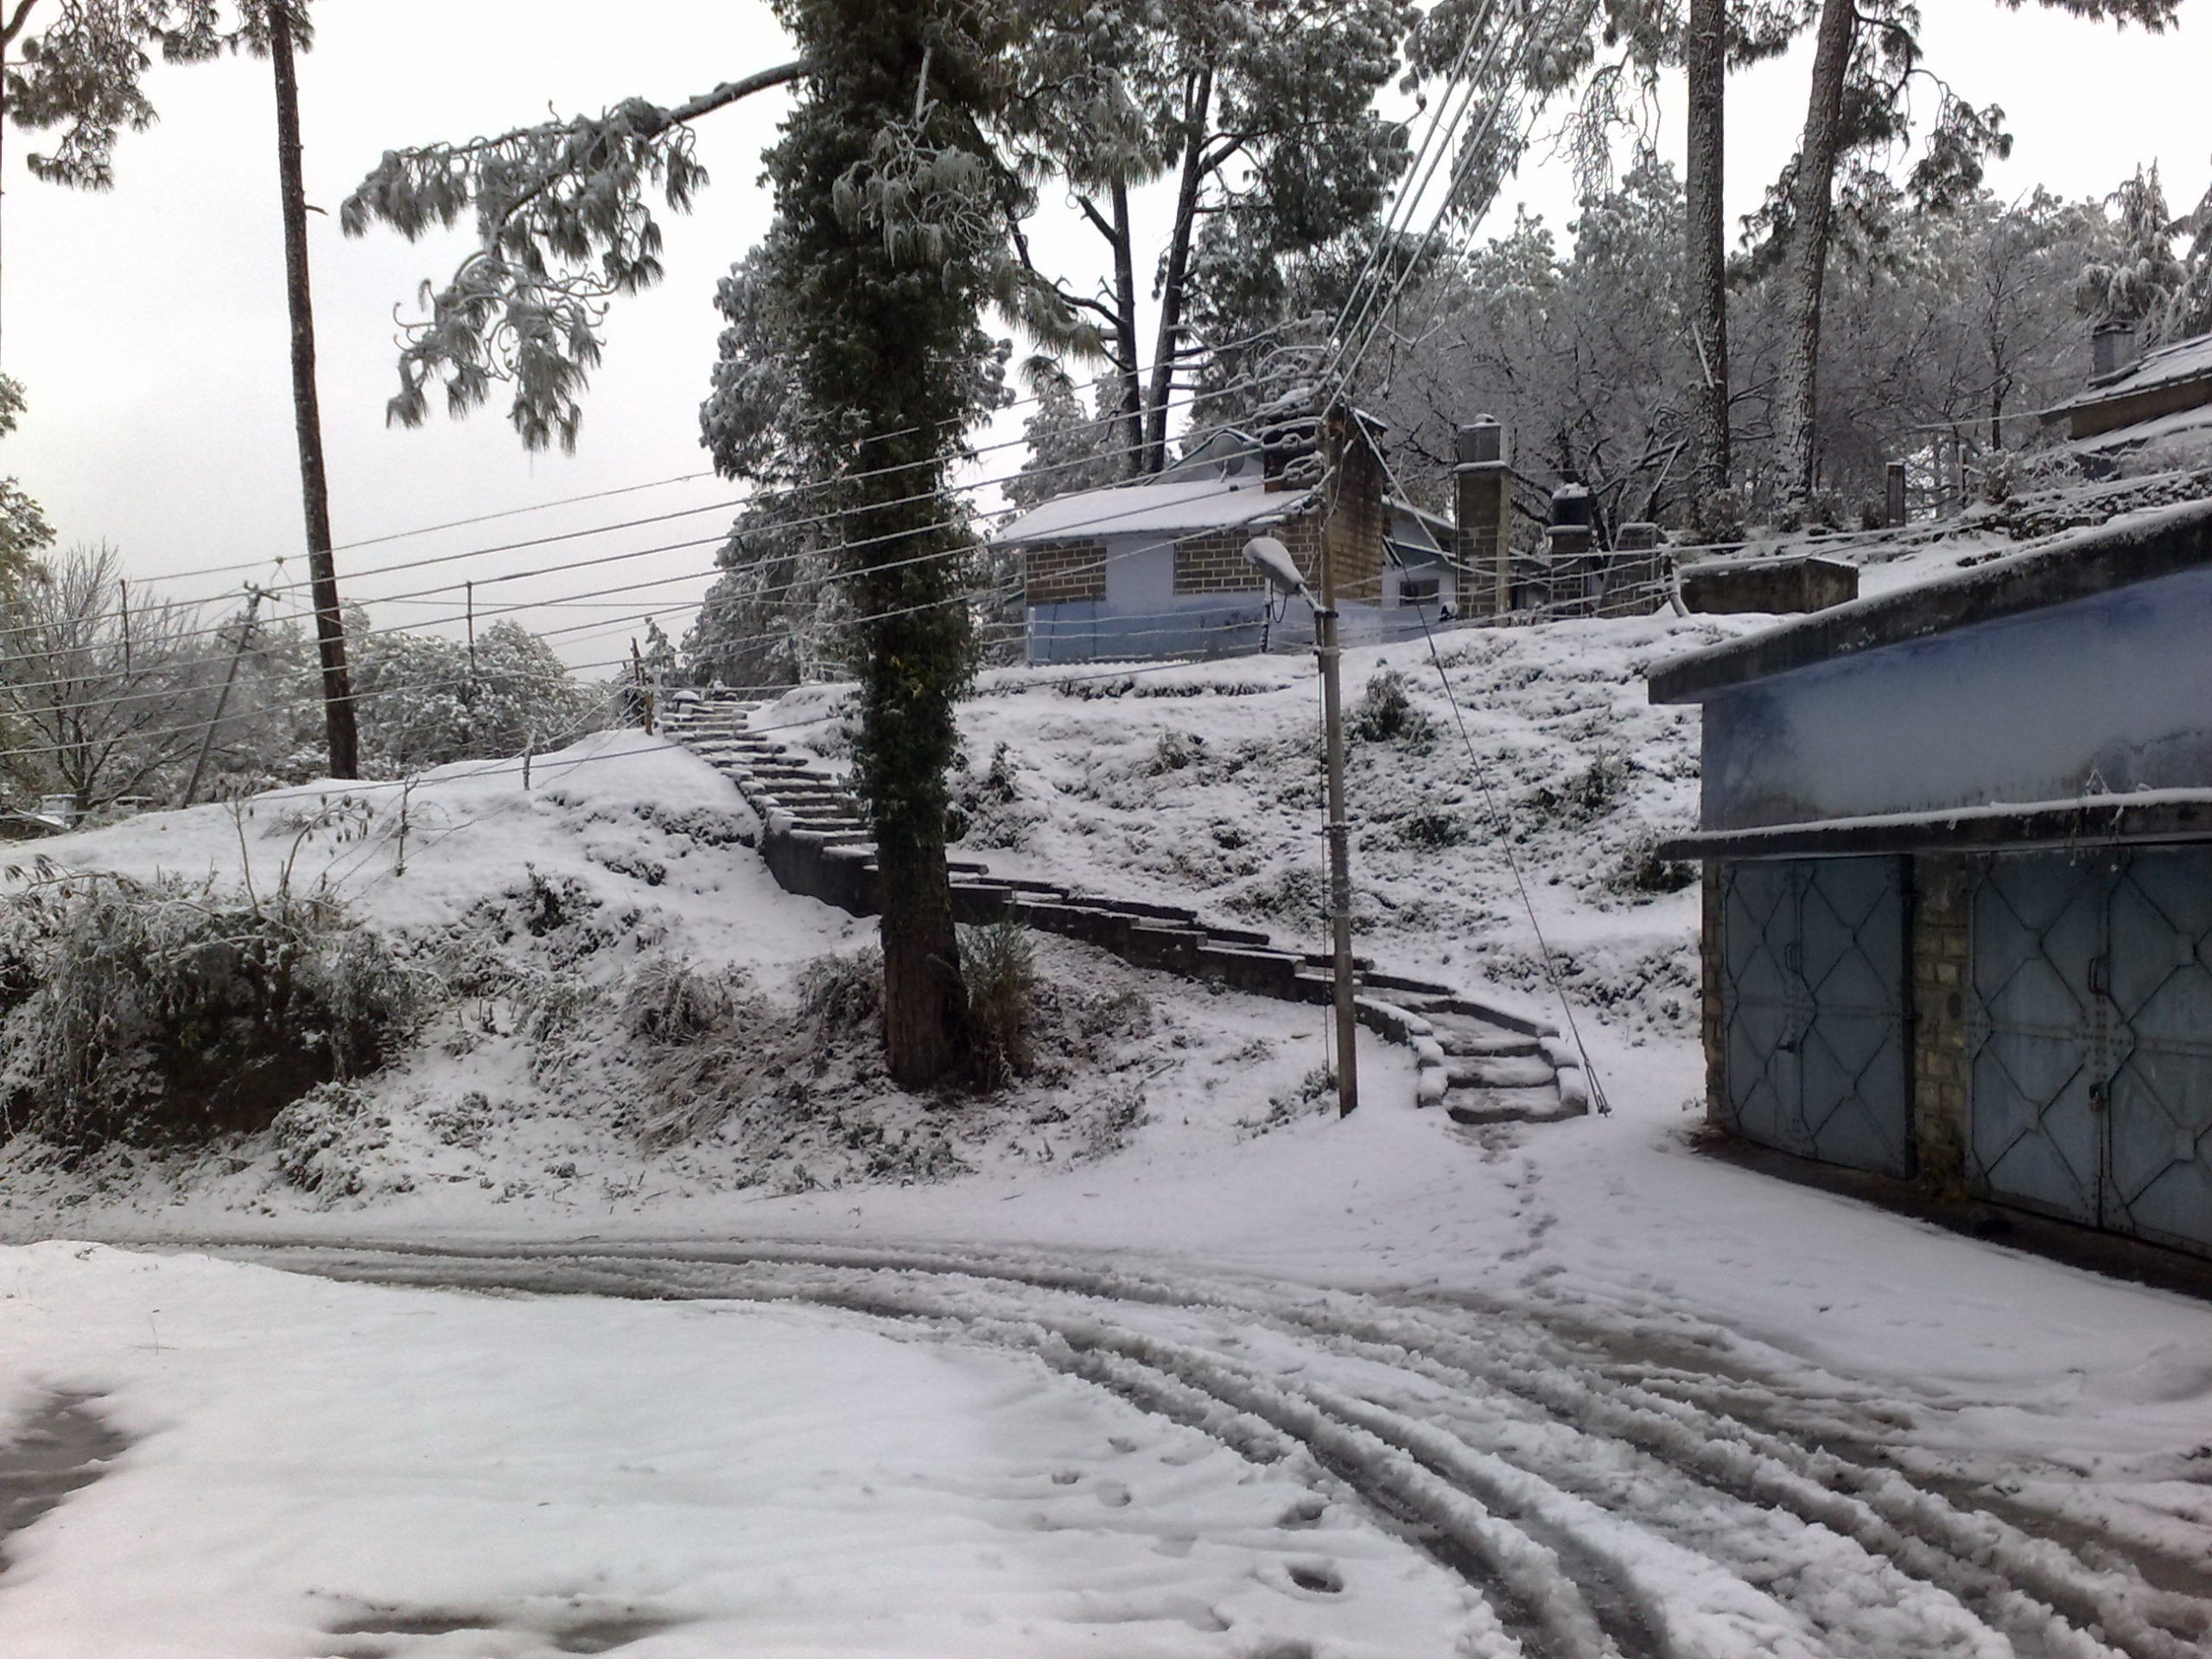 Ranikhet after a mild snowfall in winters